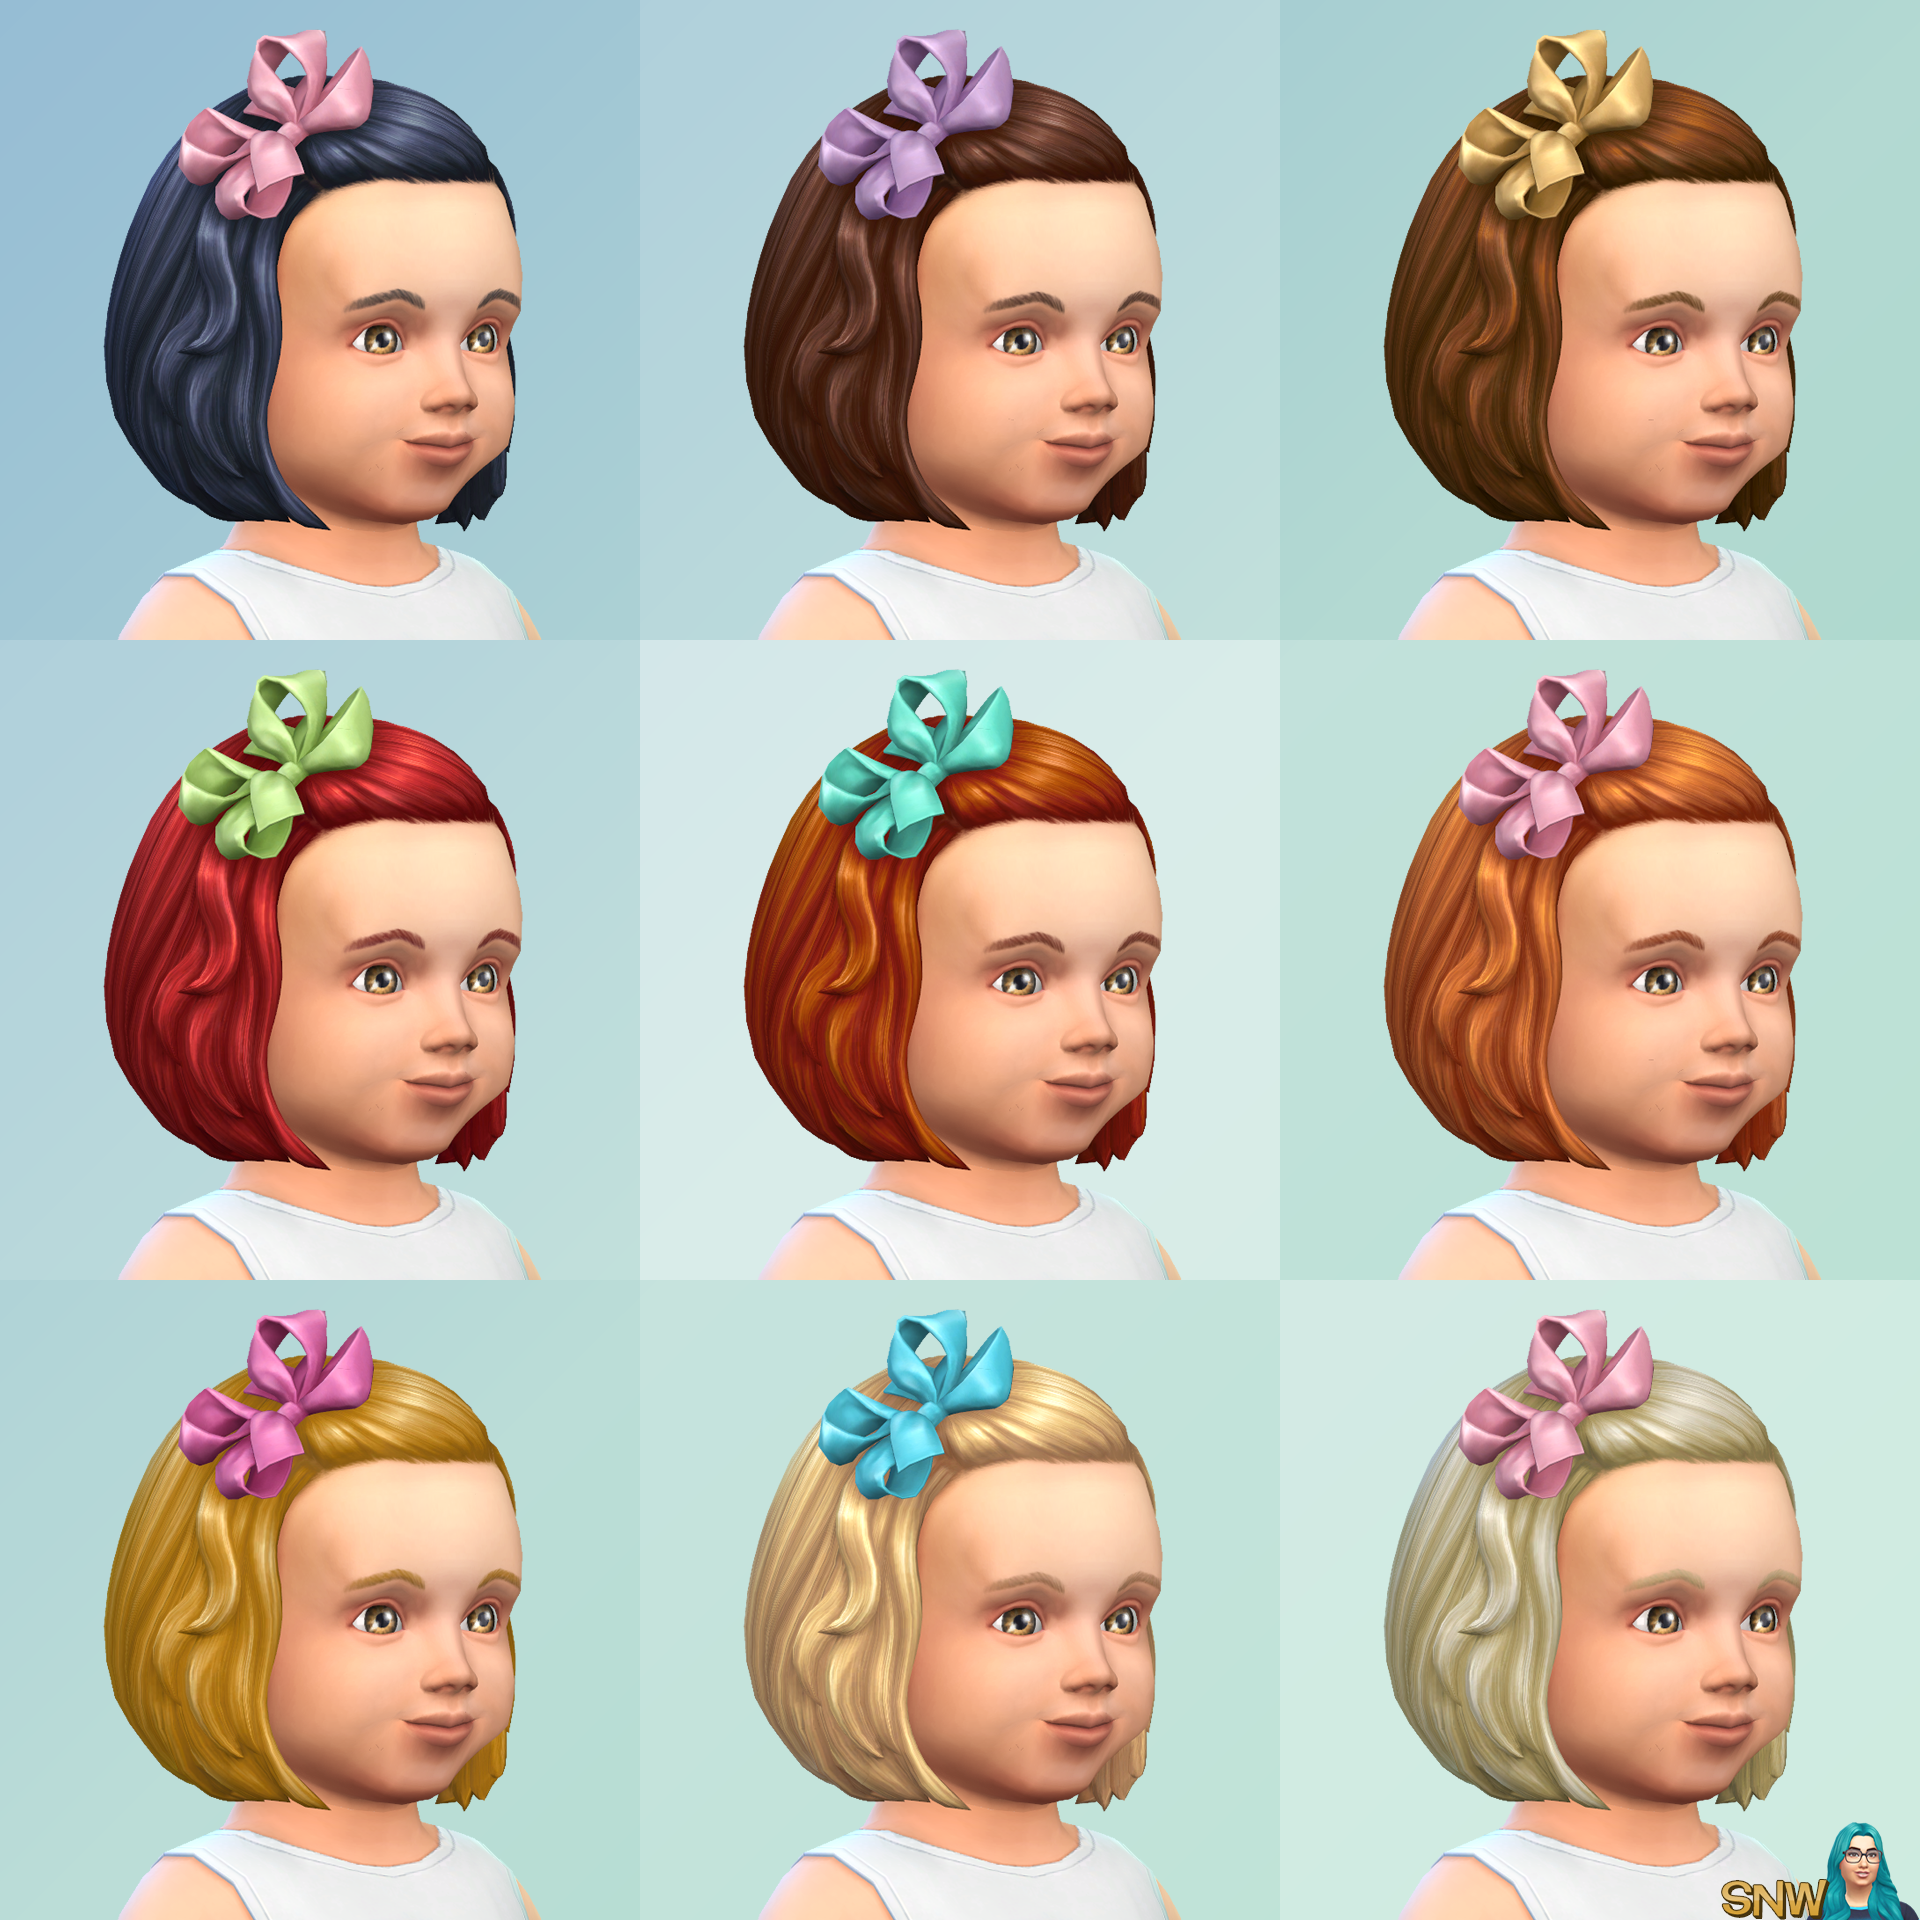 The Sims 4 Toddler Stuff Cas Overview Snw Simsnetwork